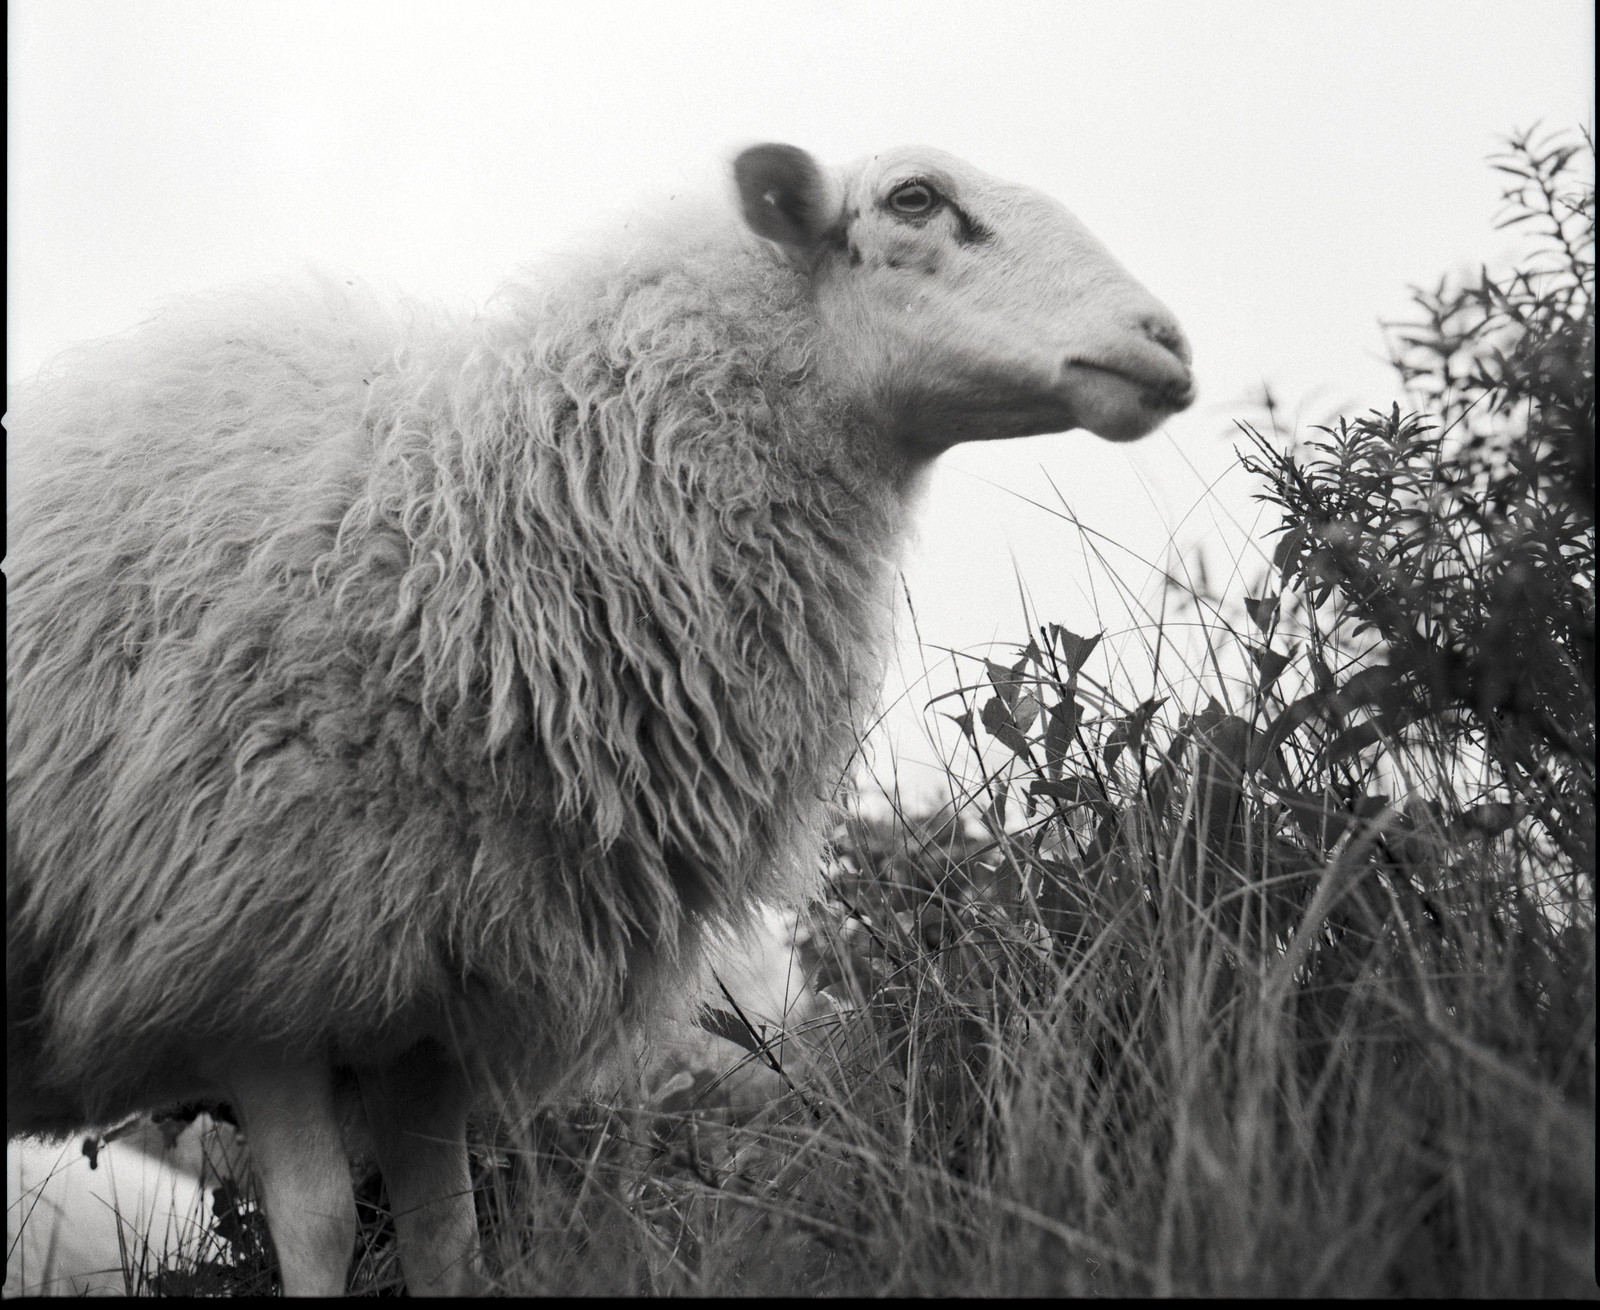 Portrait of a Sheep on Adox CHS II | by Mark Dries